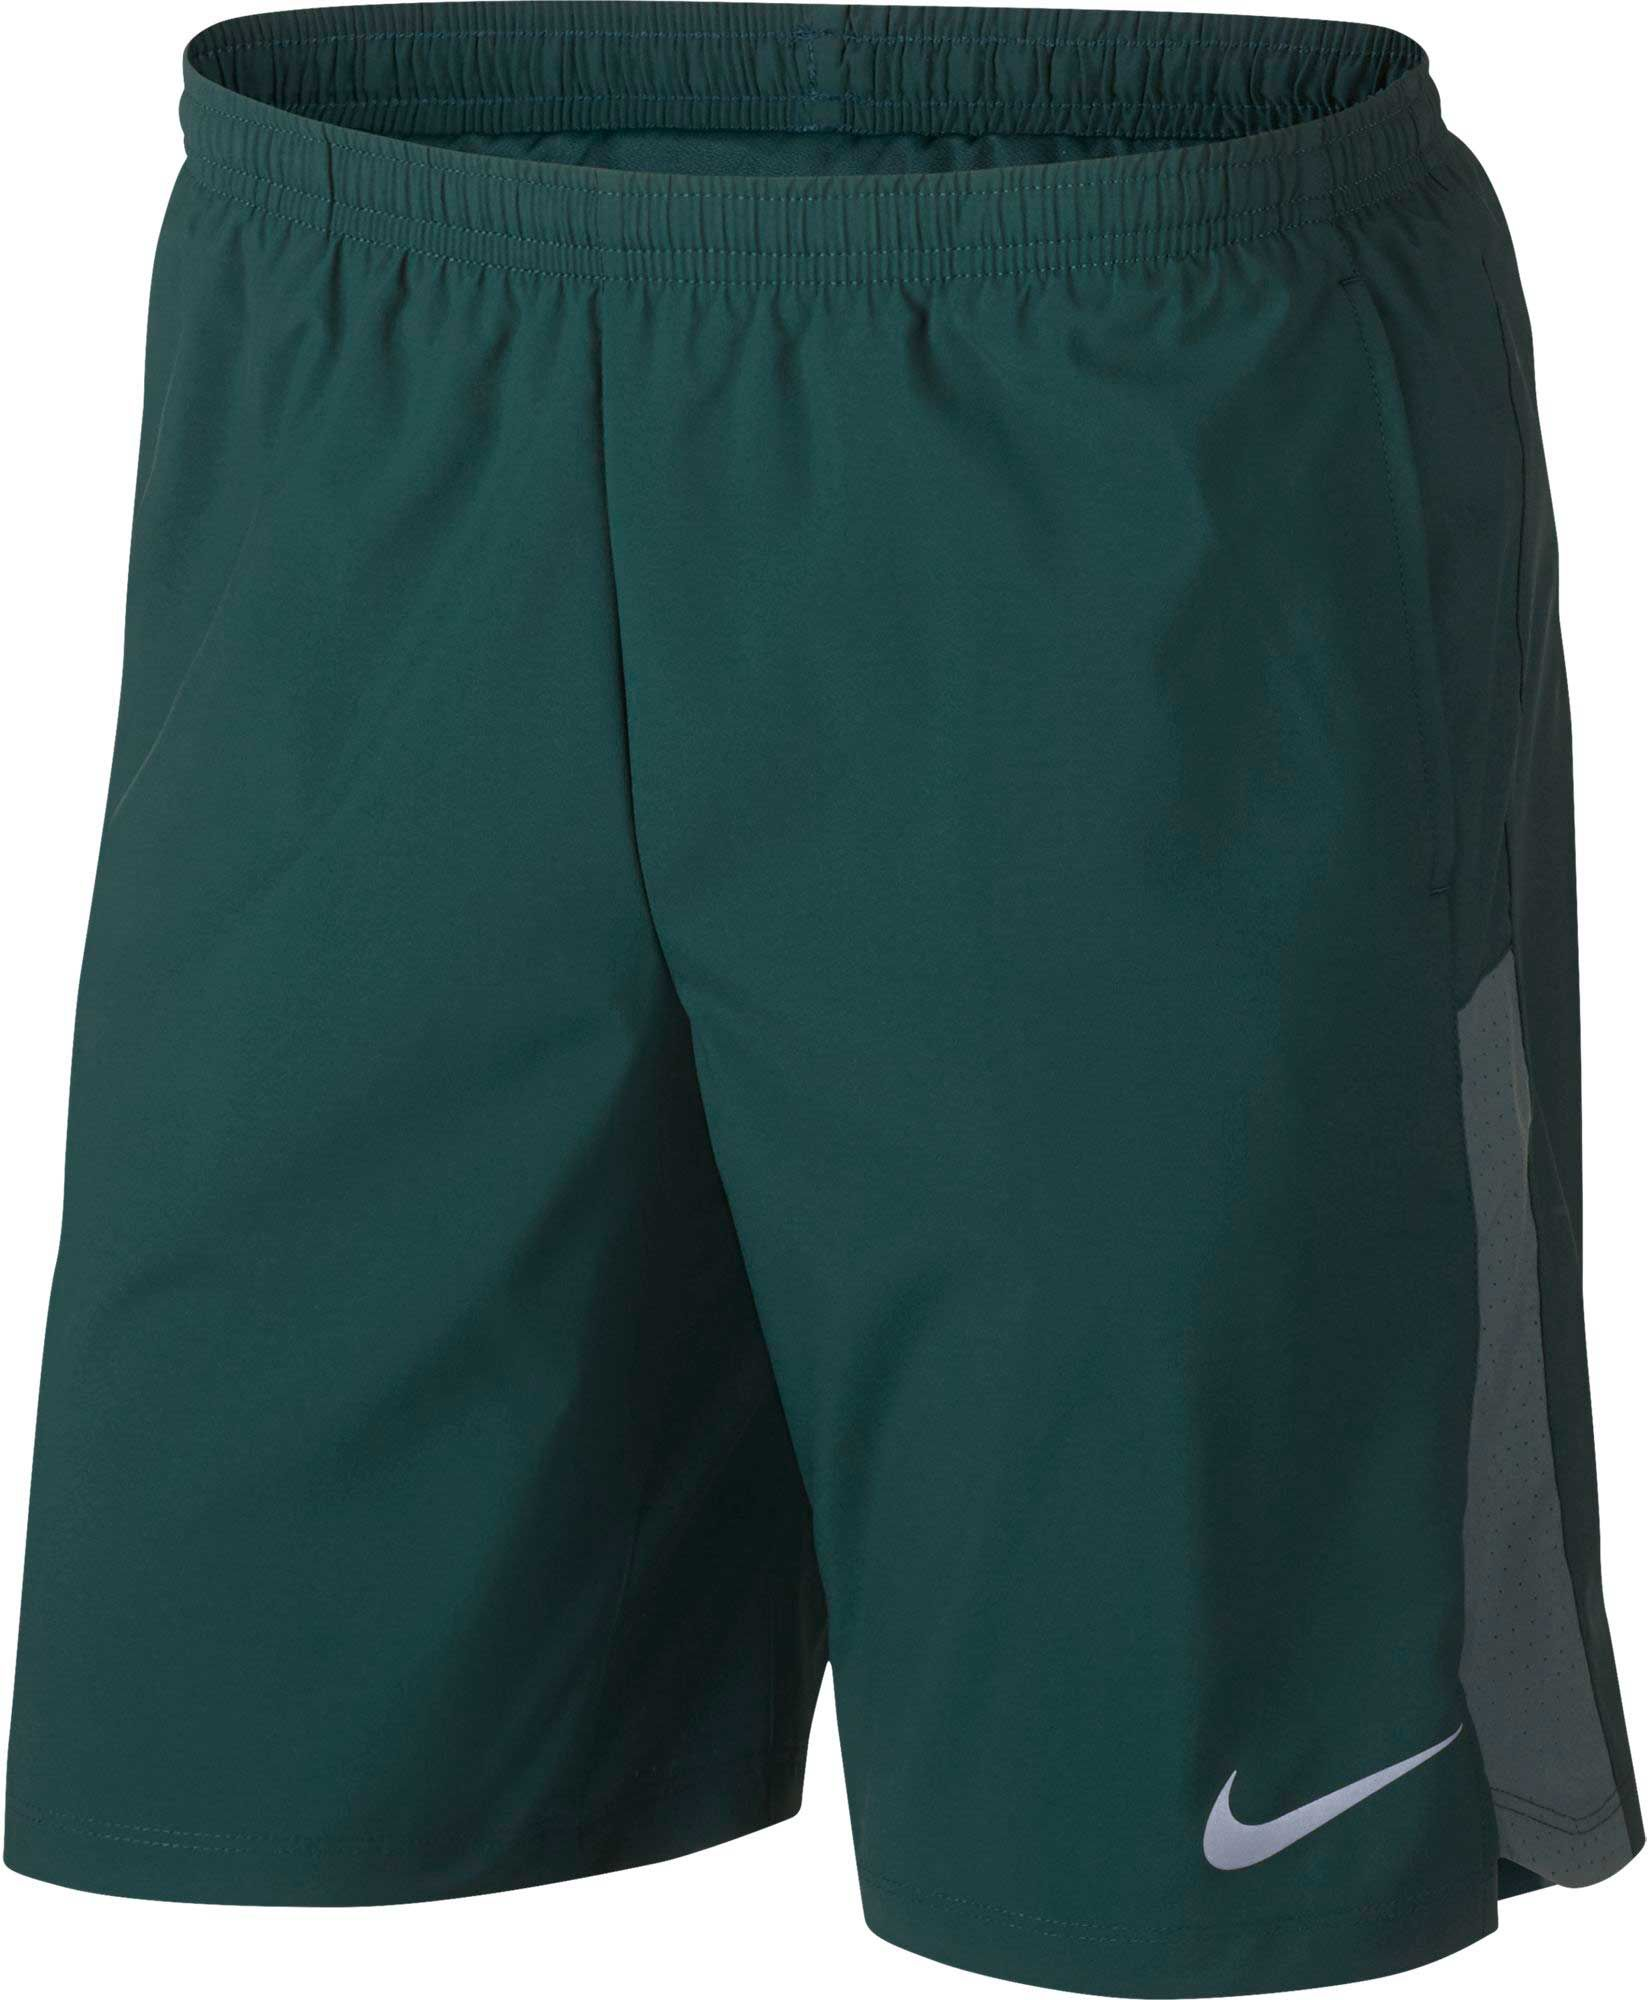 nike-mens-9-flex-running-shorts by nike